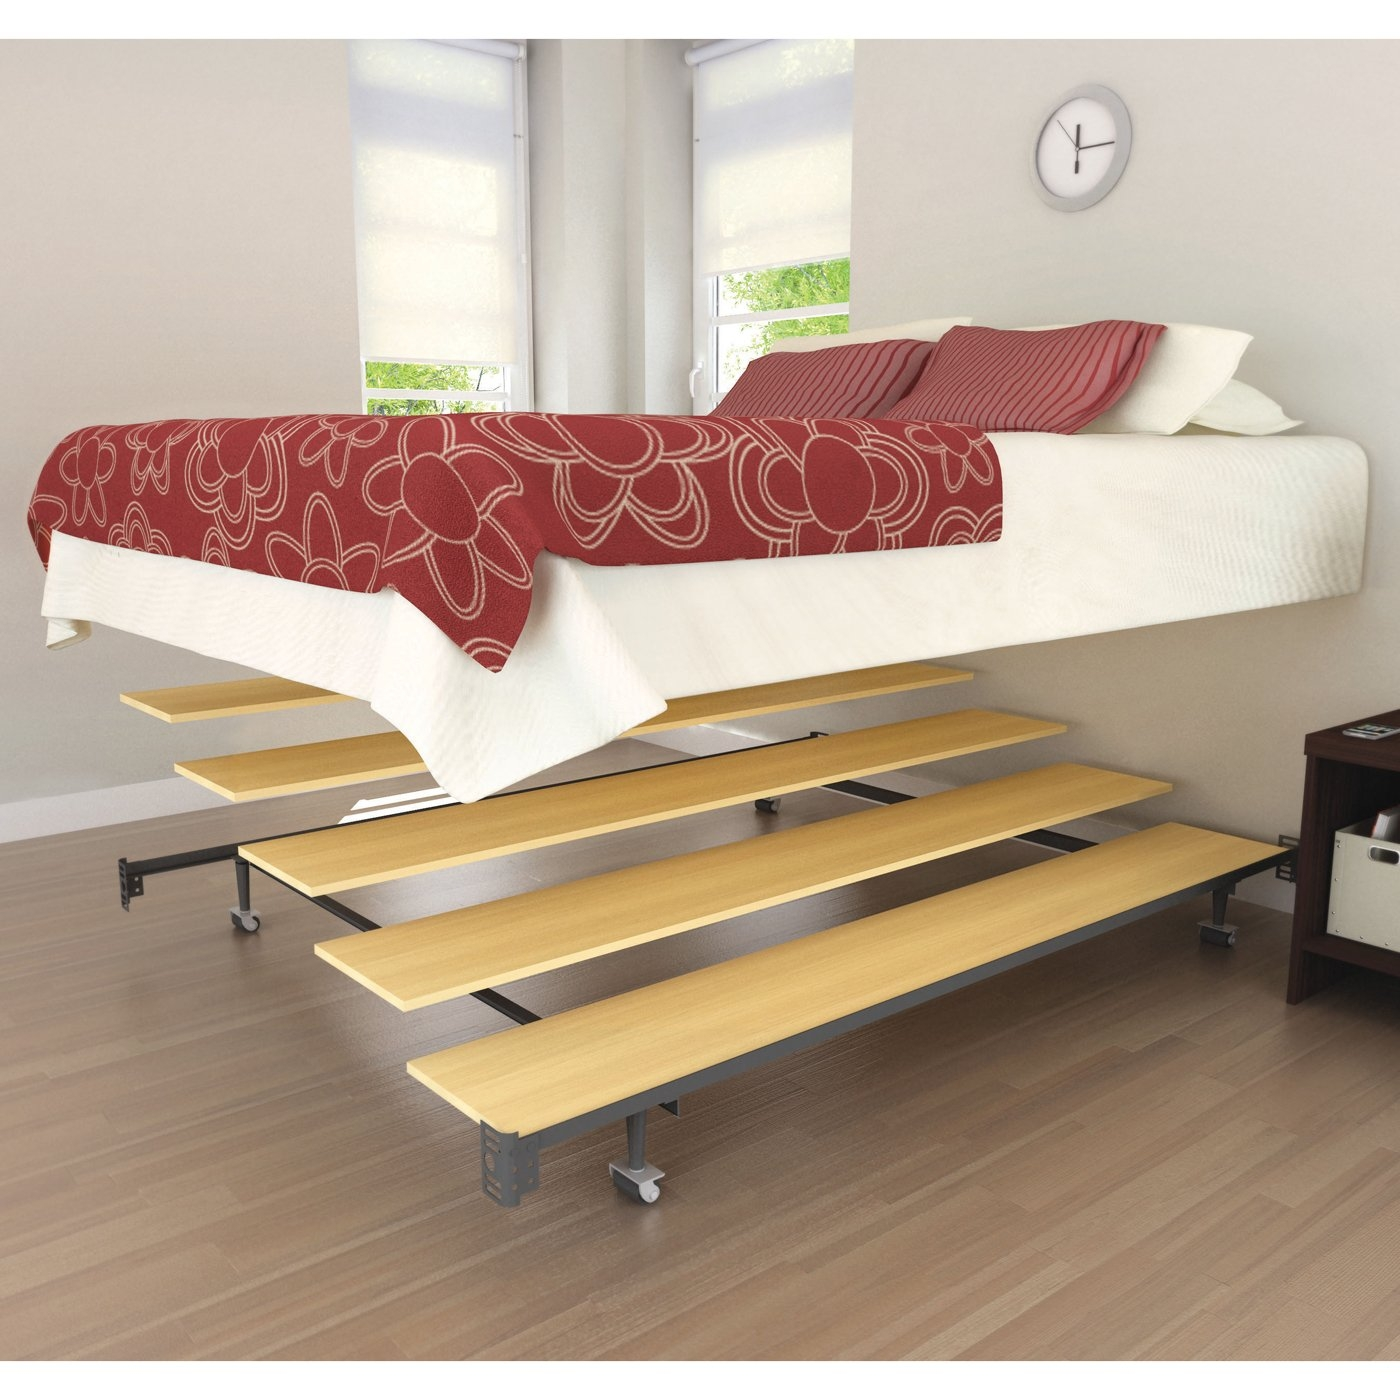 Permalink to Queen Size Bed Frame And Mattress Set